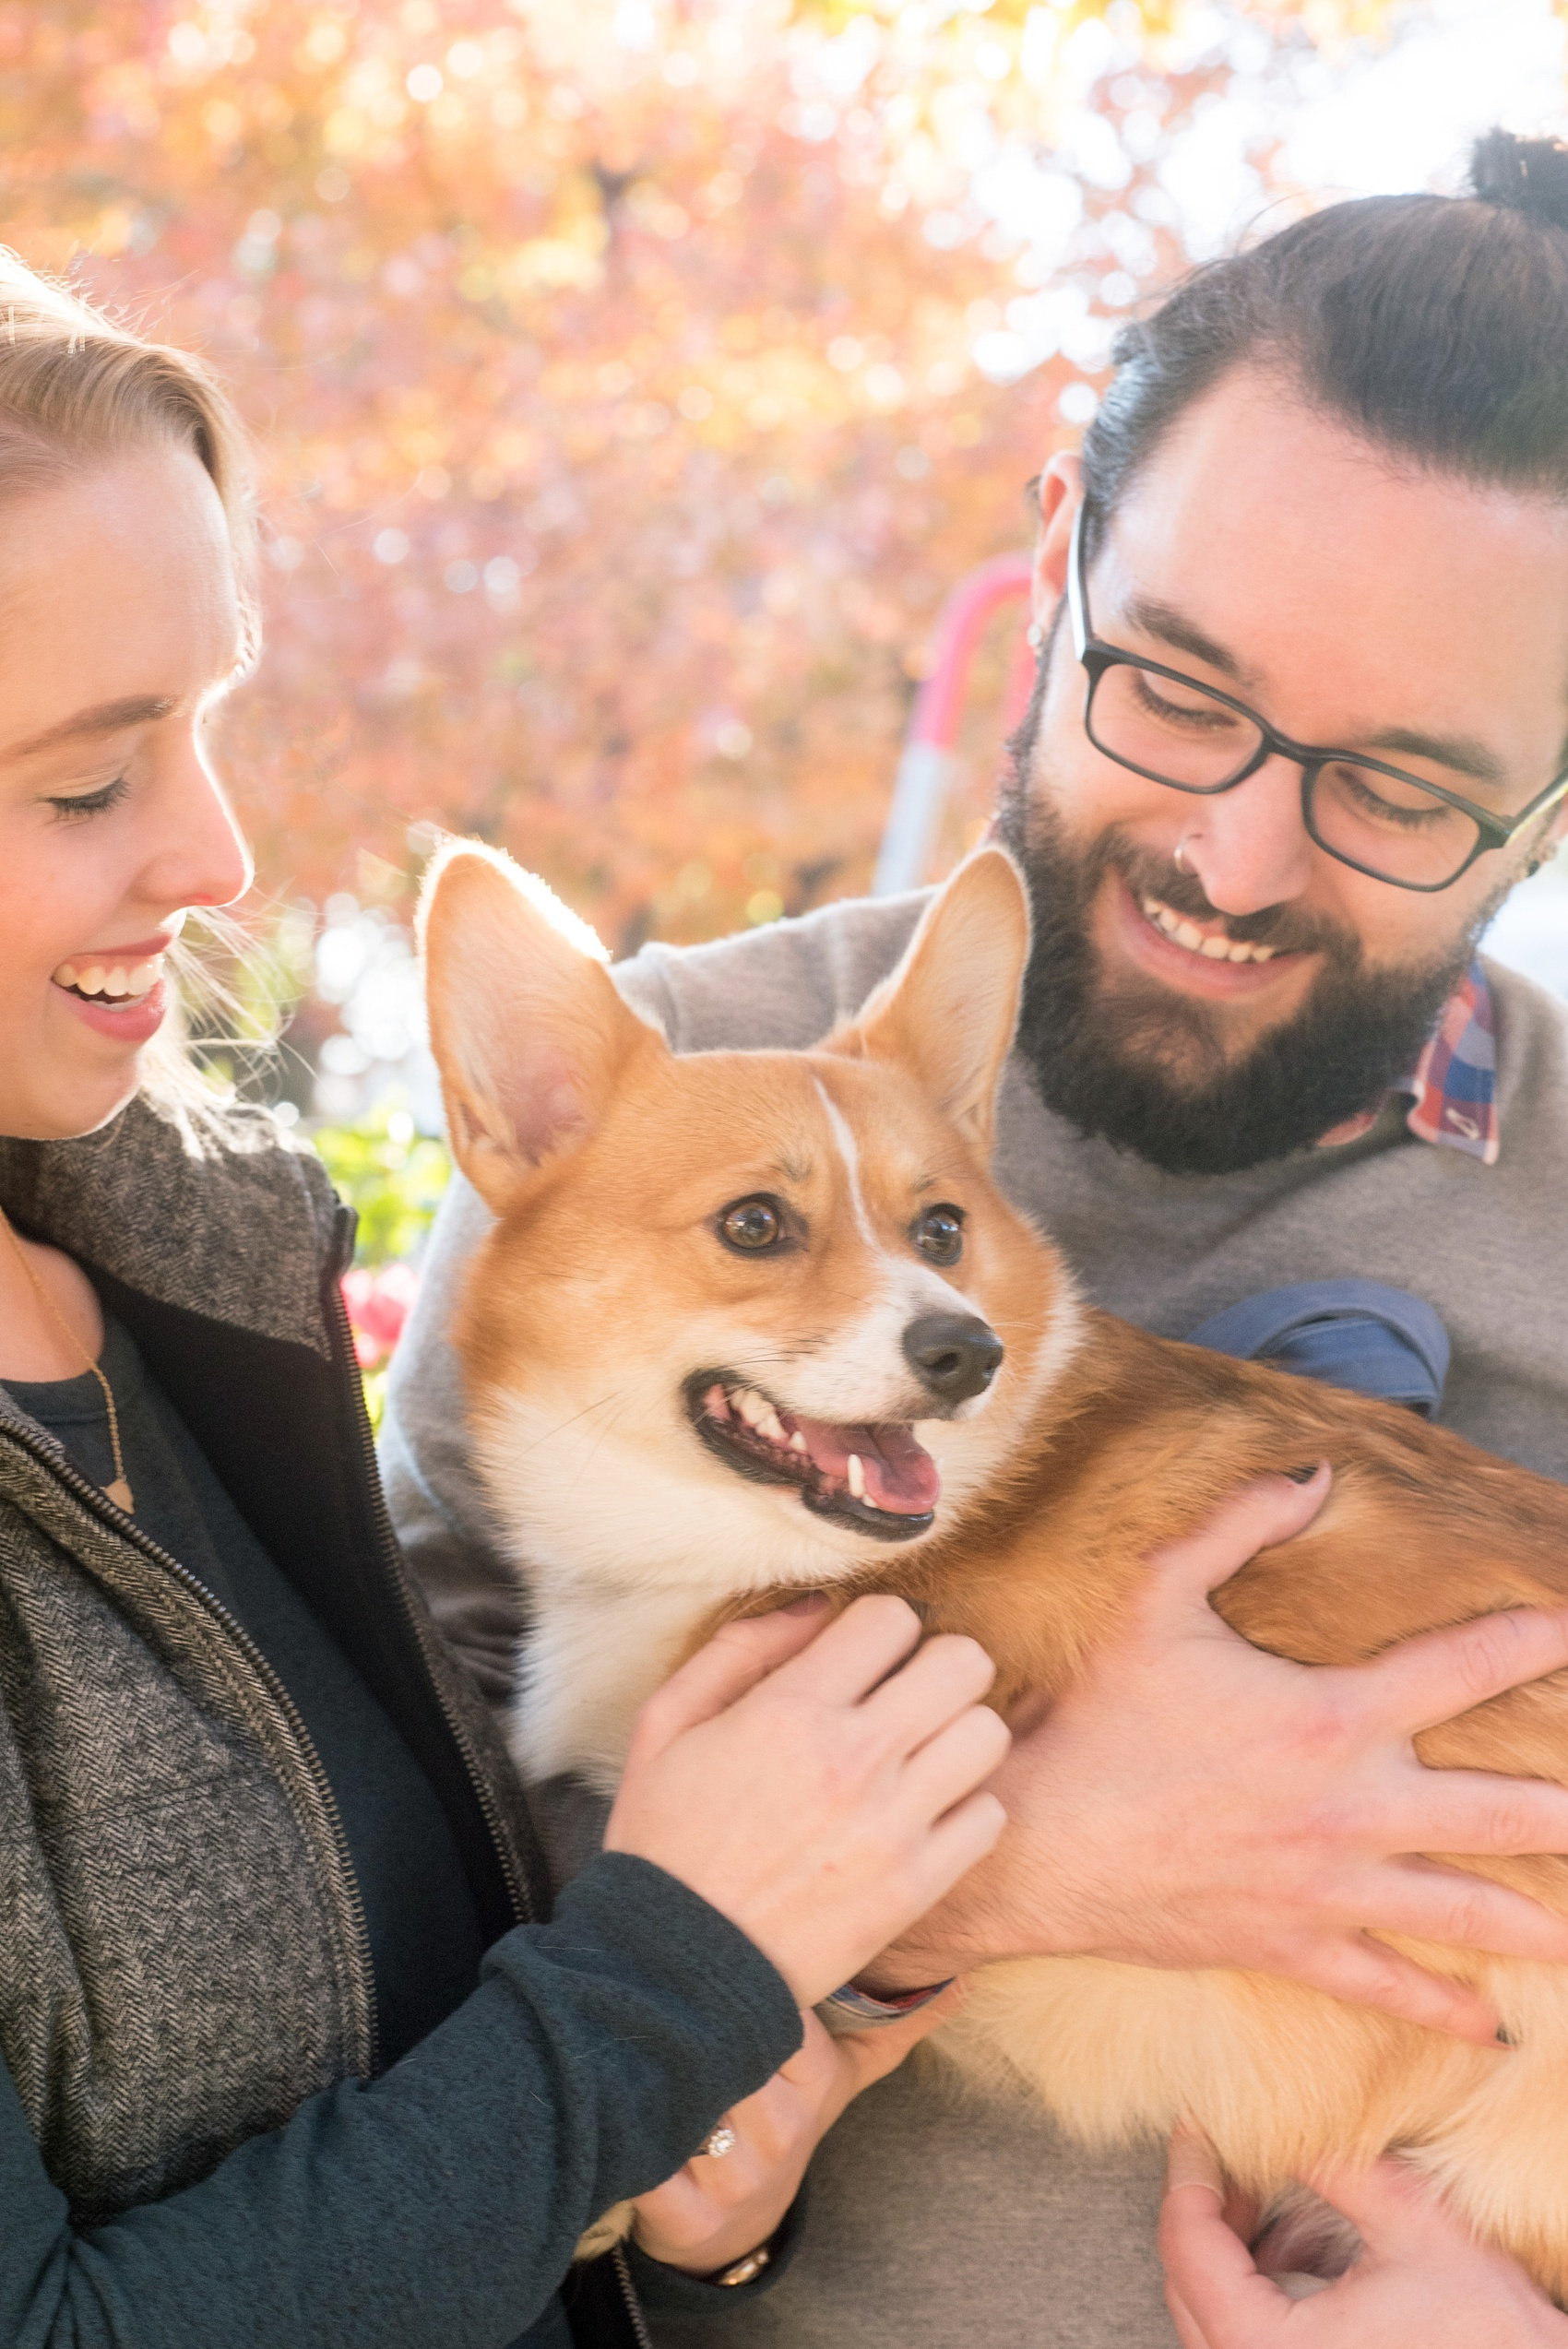 Mikkel Paige Photography photos of a Durham engagement session with the bride and groom's Corgi dog.